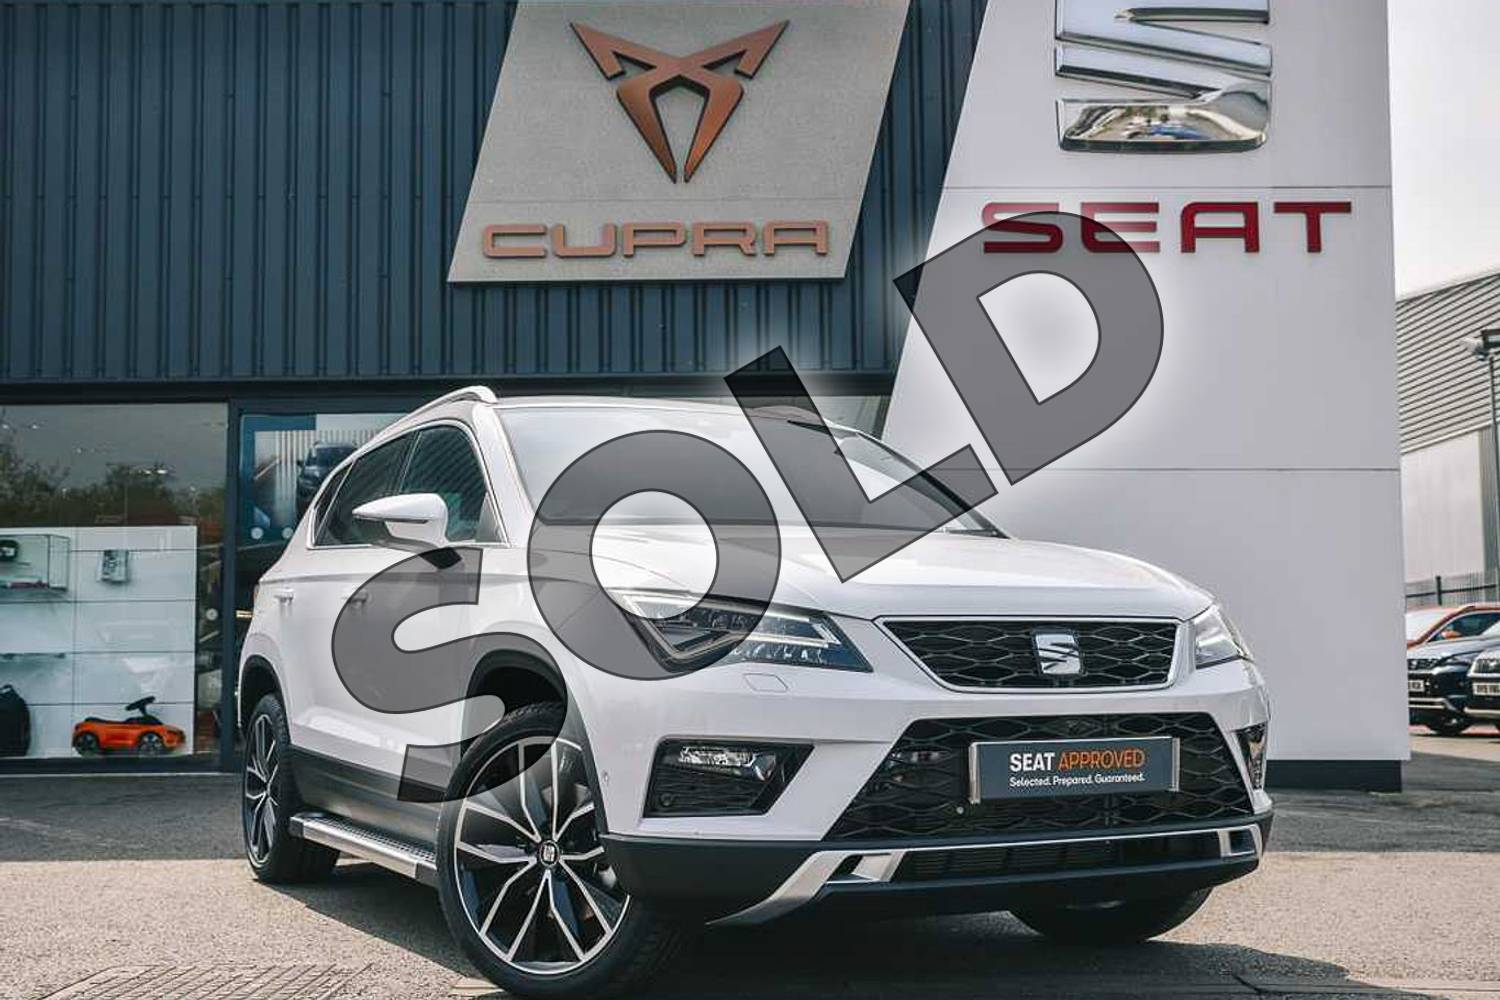 2019 SEAT Ateca Estate 1.5 TSI EVO Xcellence Lux (EZ) 5dr in White at Listers SEAT Coventry